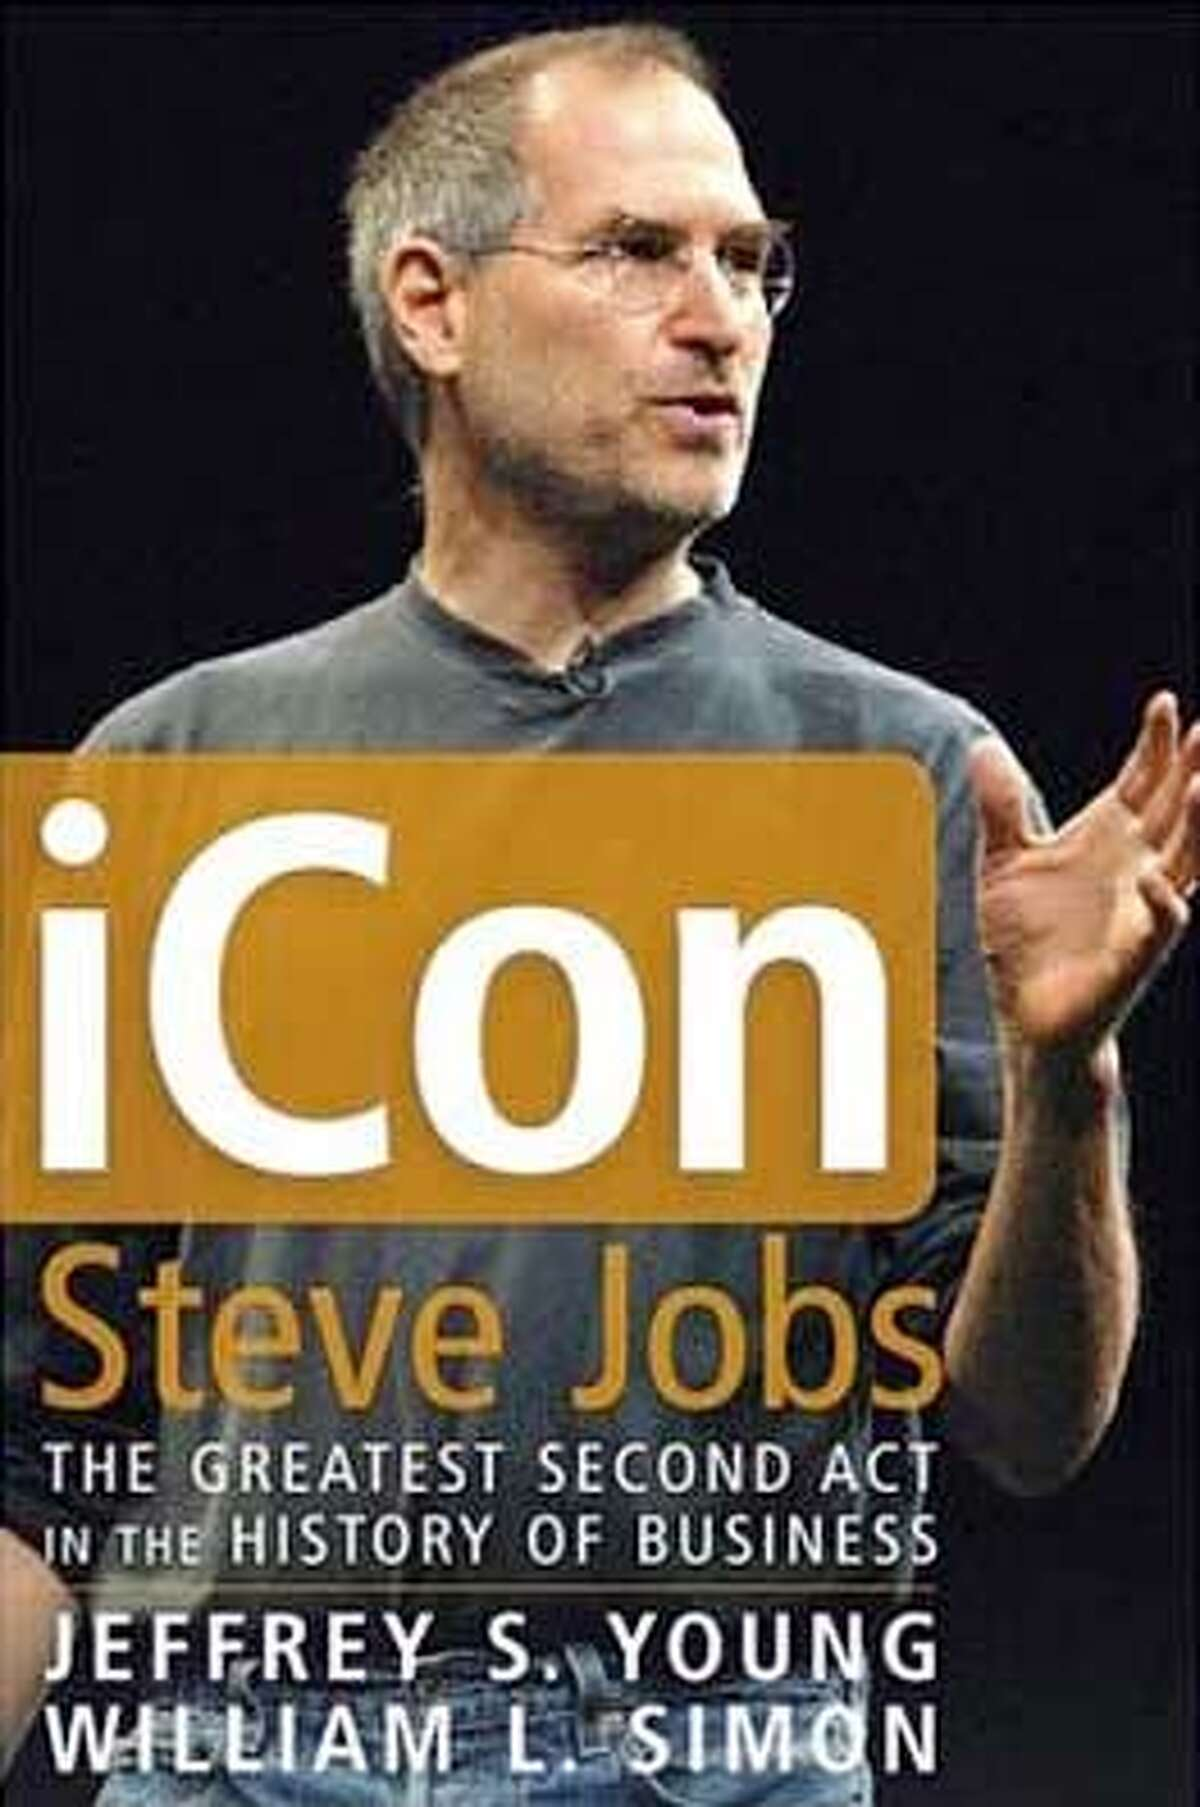 A new biography of Steve Jobs has caused a flap with Apple.